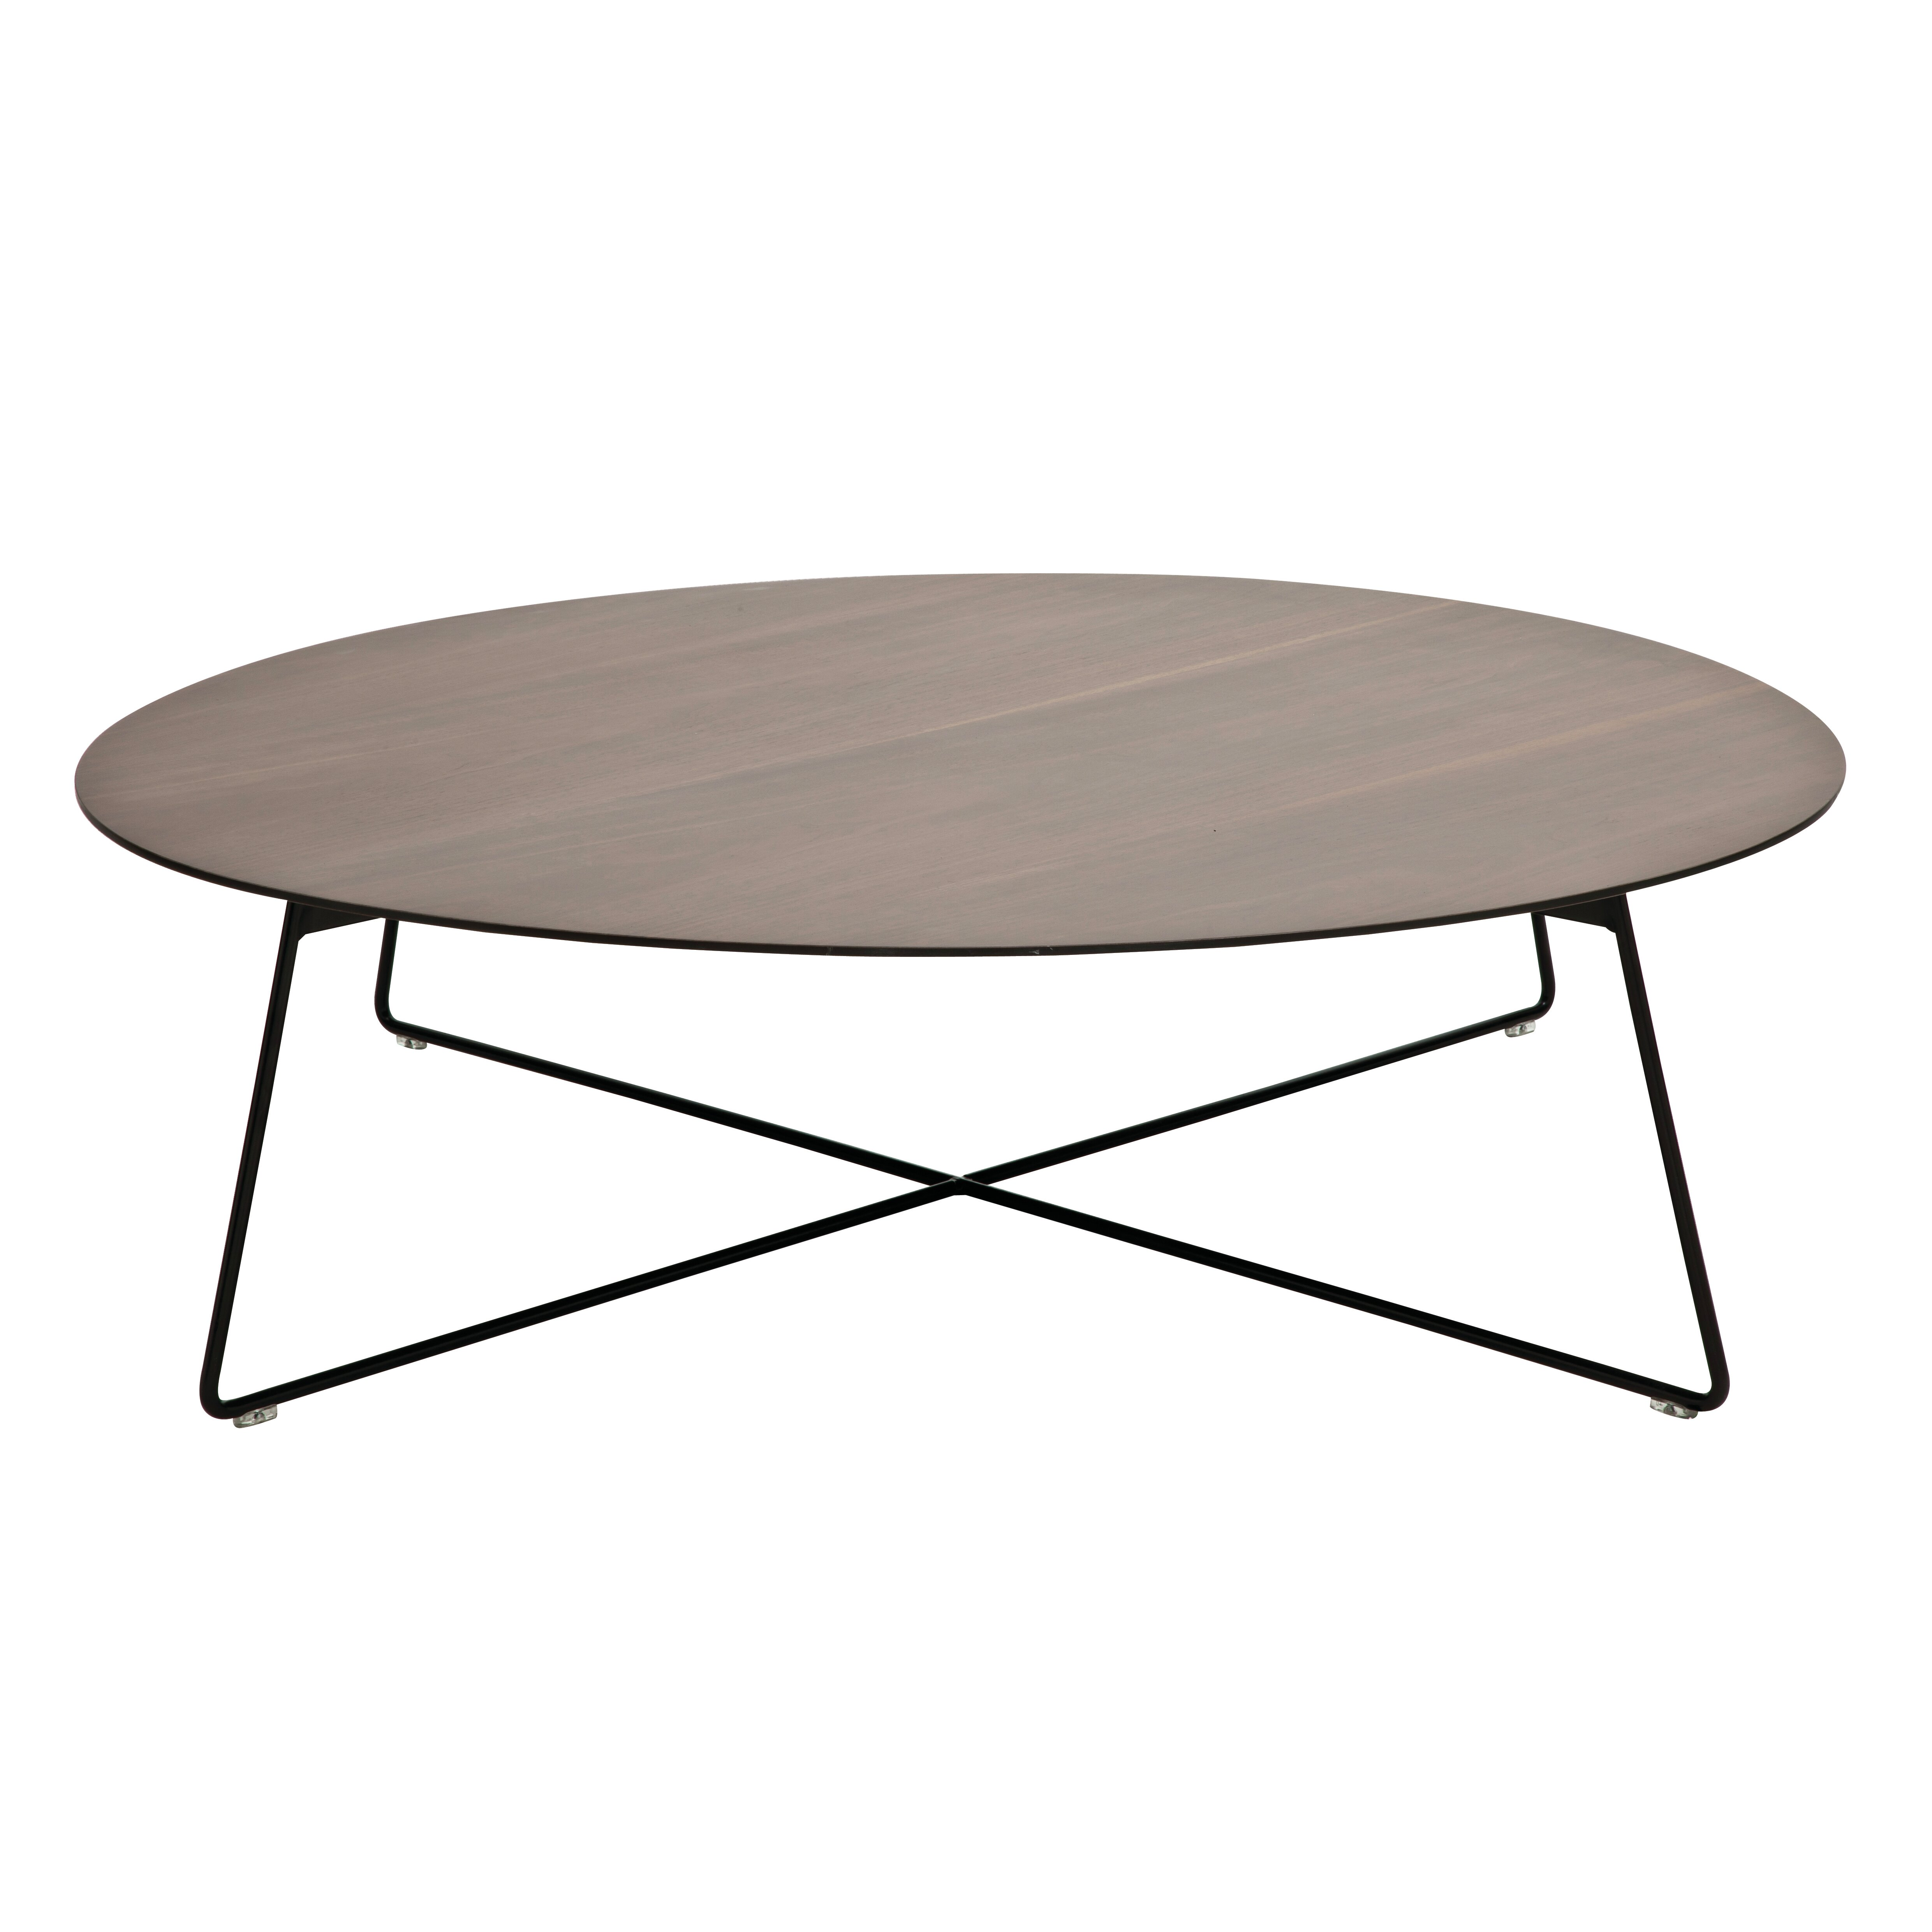 Oval Coffee Table Malaysia: B&T Design Fly Oval Coffee Table